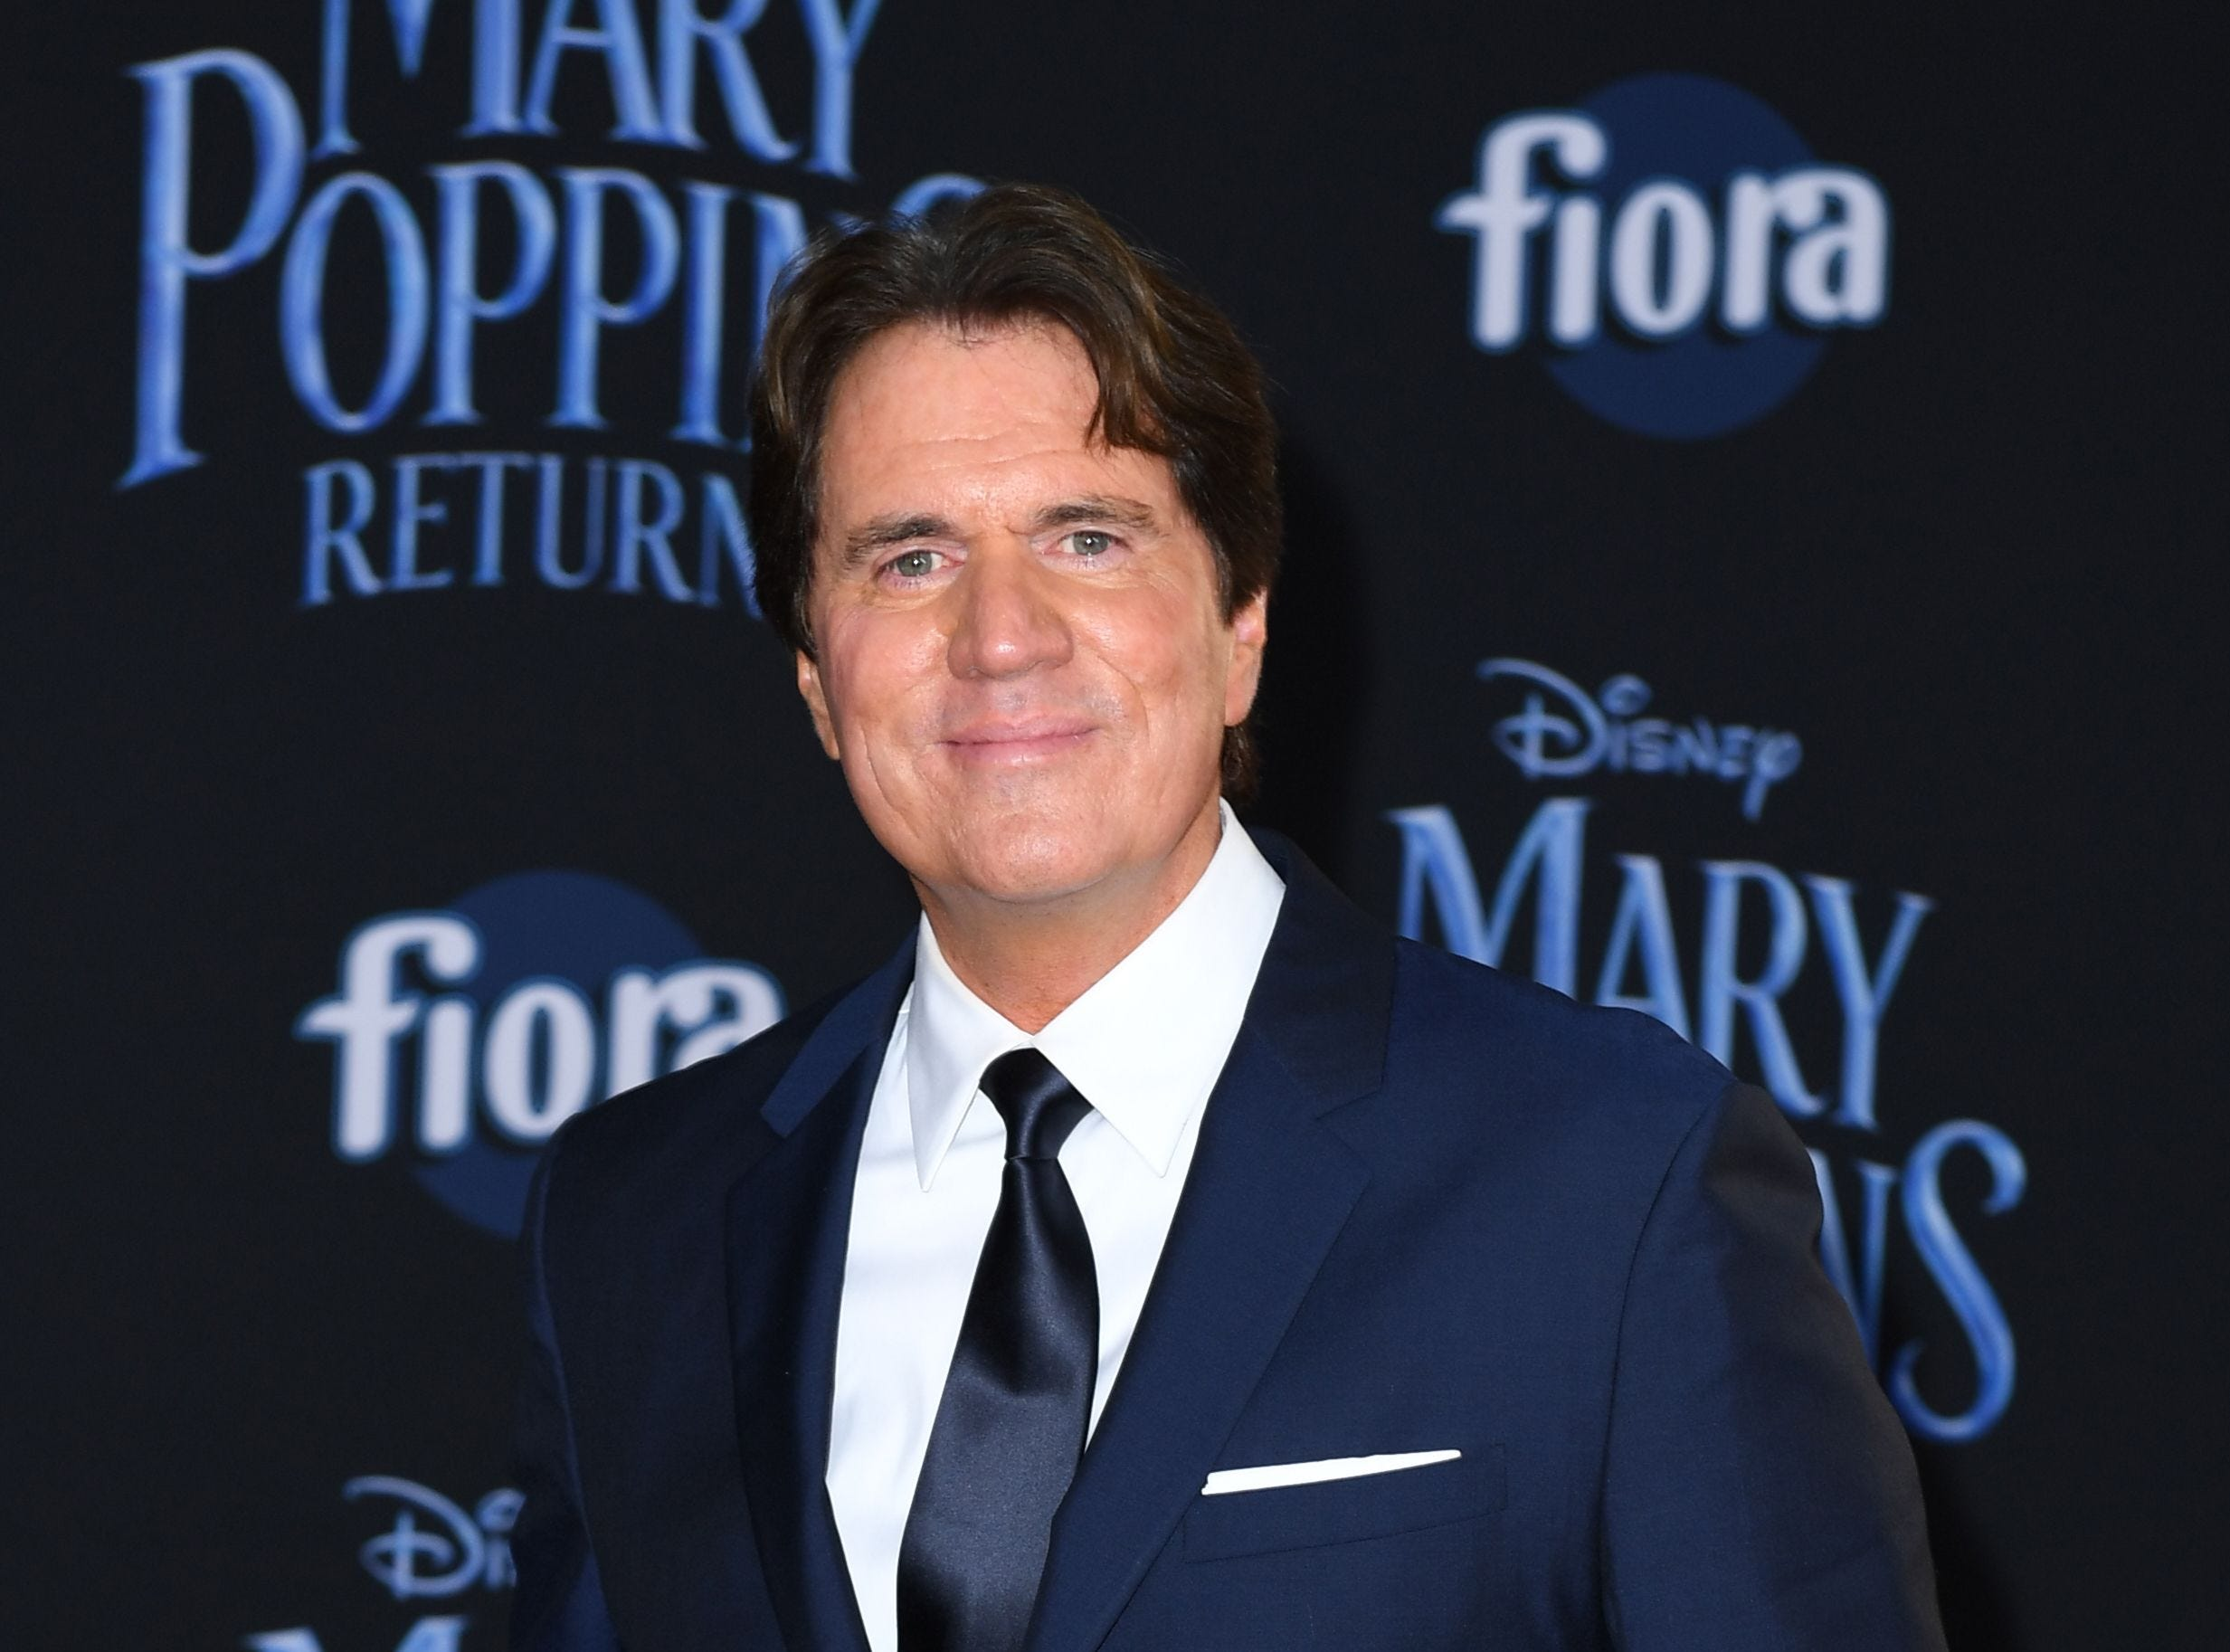 """US director/producer Rob Marshall arrives for the world premiere of Disney's """"Mary Poppins Returns"""" at the Dolby theatre in Hollywood on November 29, 2018. (Photo by VALERIE MACON / AFP)VALERIE MACON/AFP/Getty Images ORG XMIT: 'Mary Pop ORIG FILE ID: AFP_1B8142"""